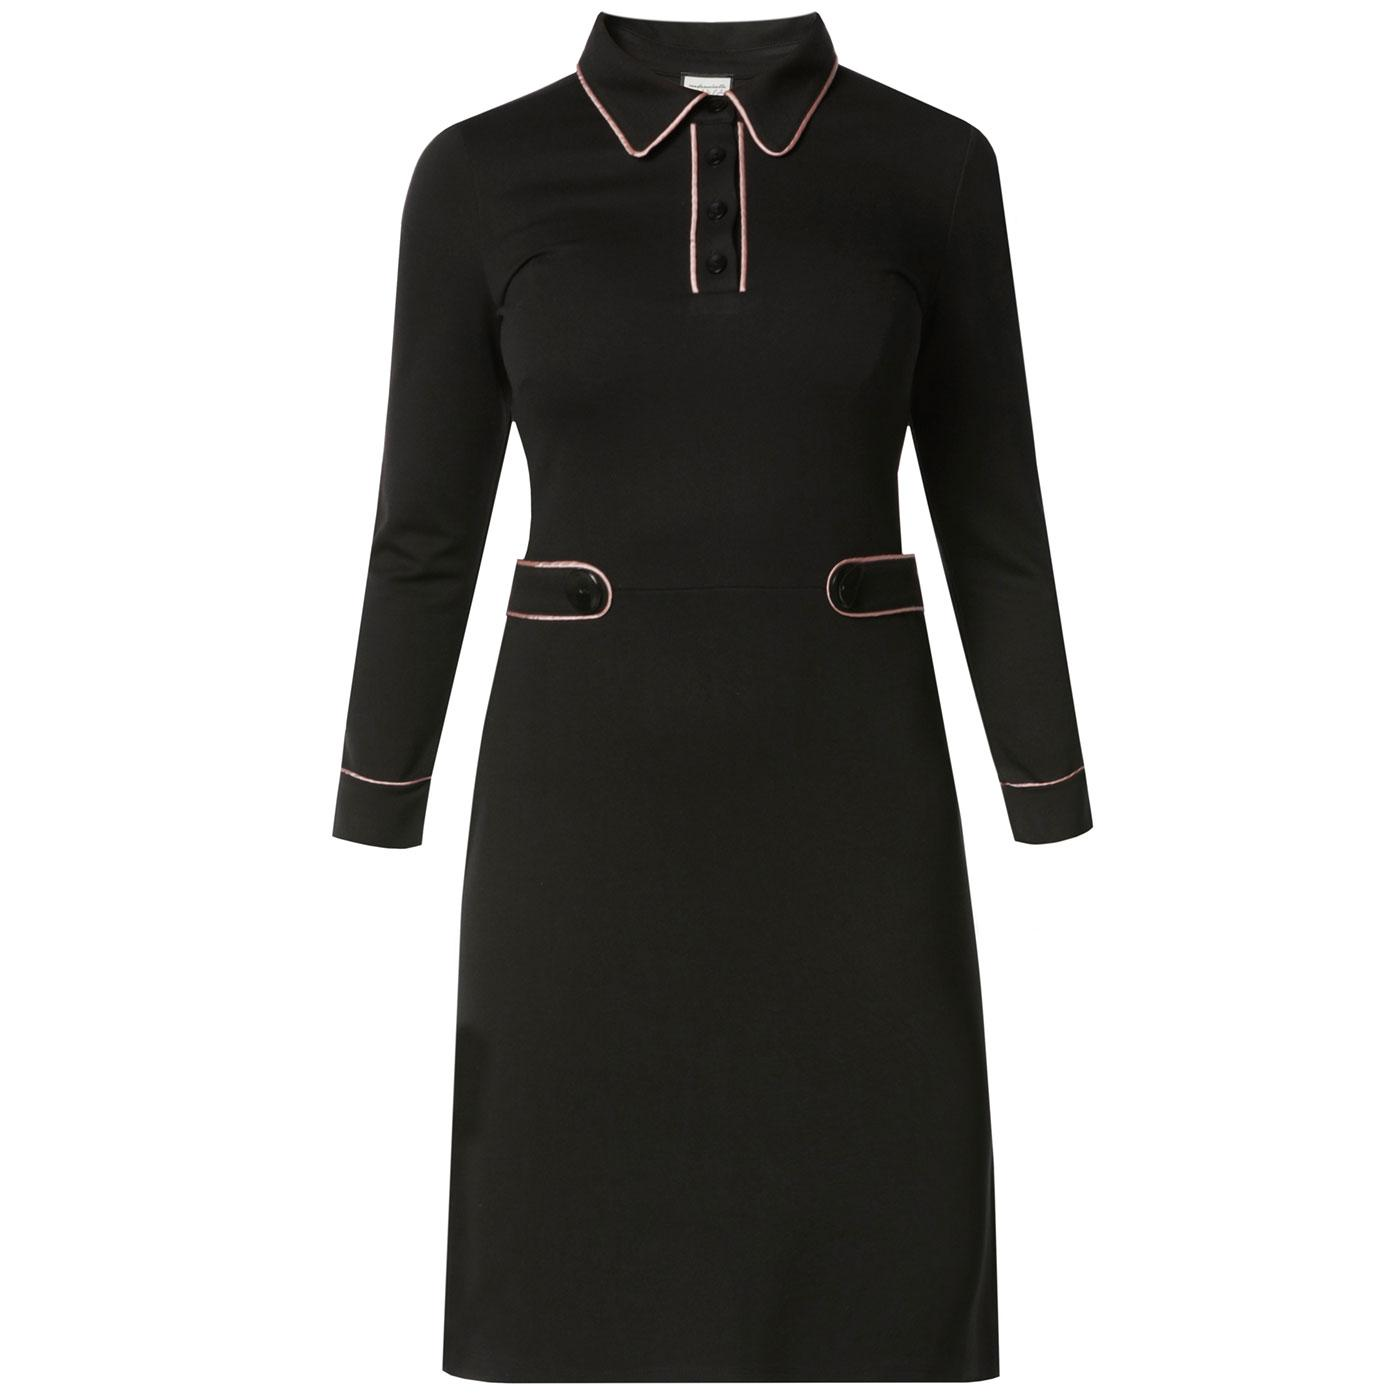 There She Goes MADEMOISELLE YEYE 60s Mod Dress